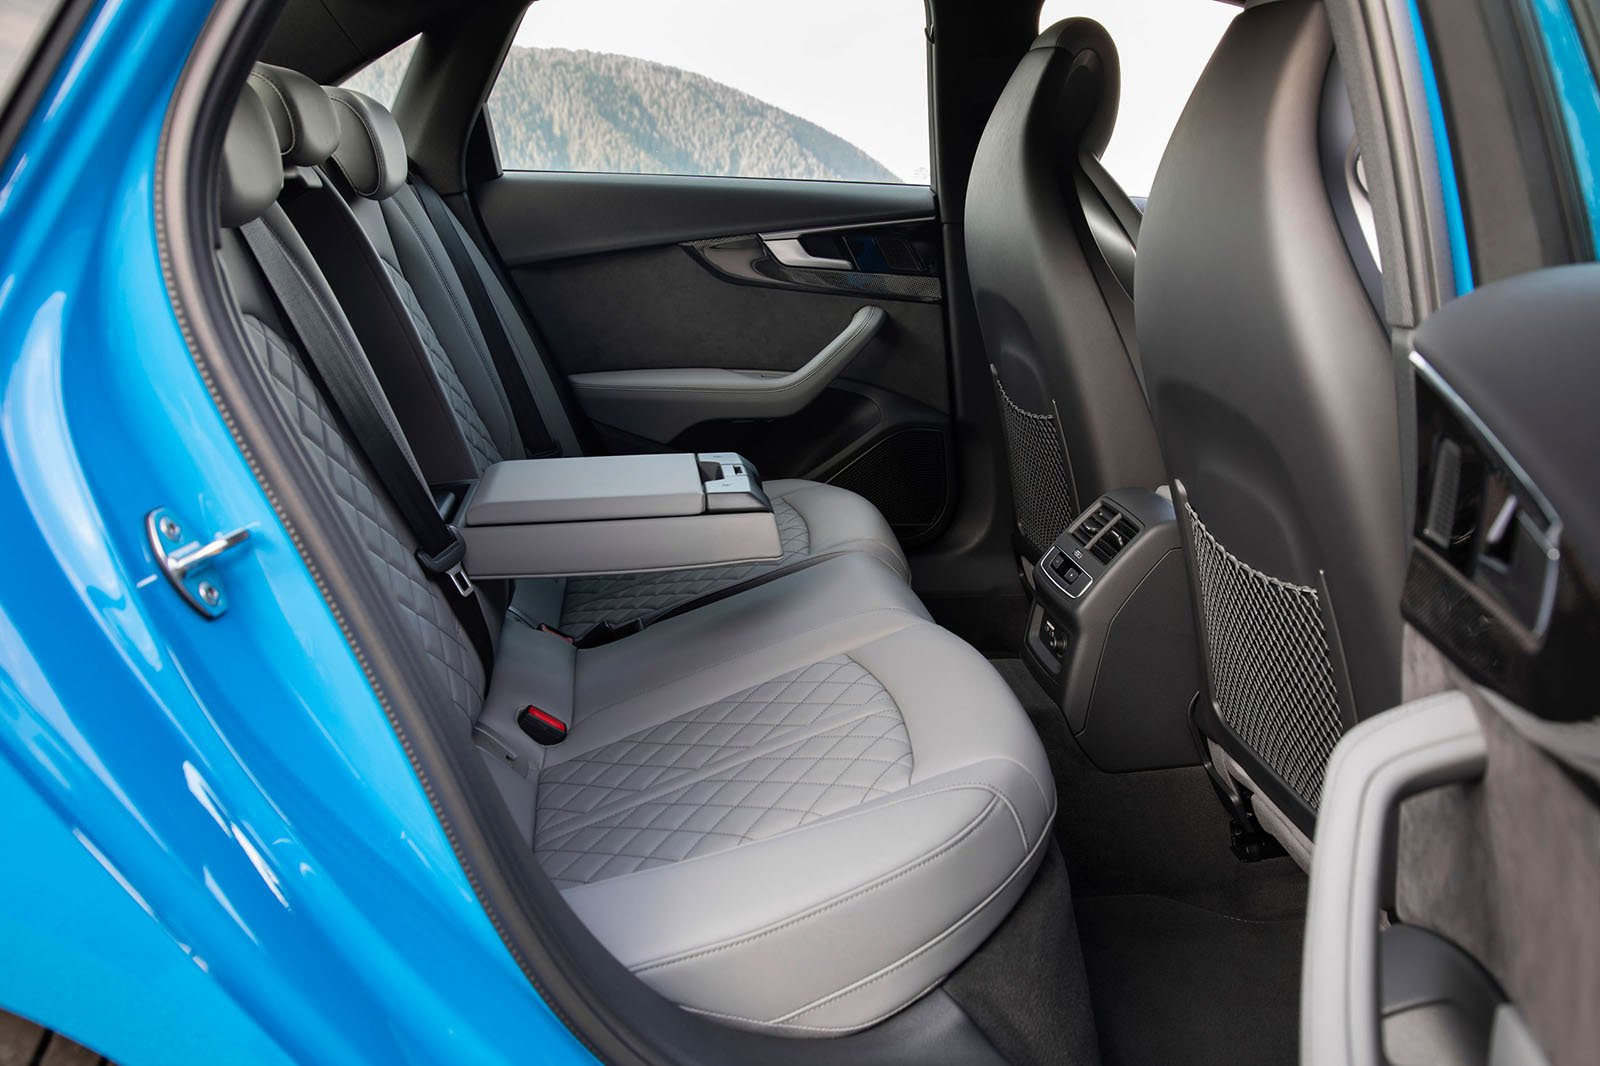 Audi S4 2019 LHD rear seats